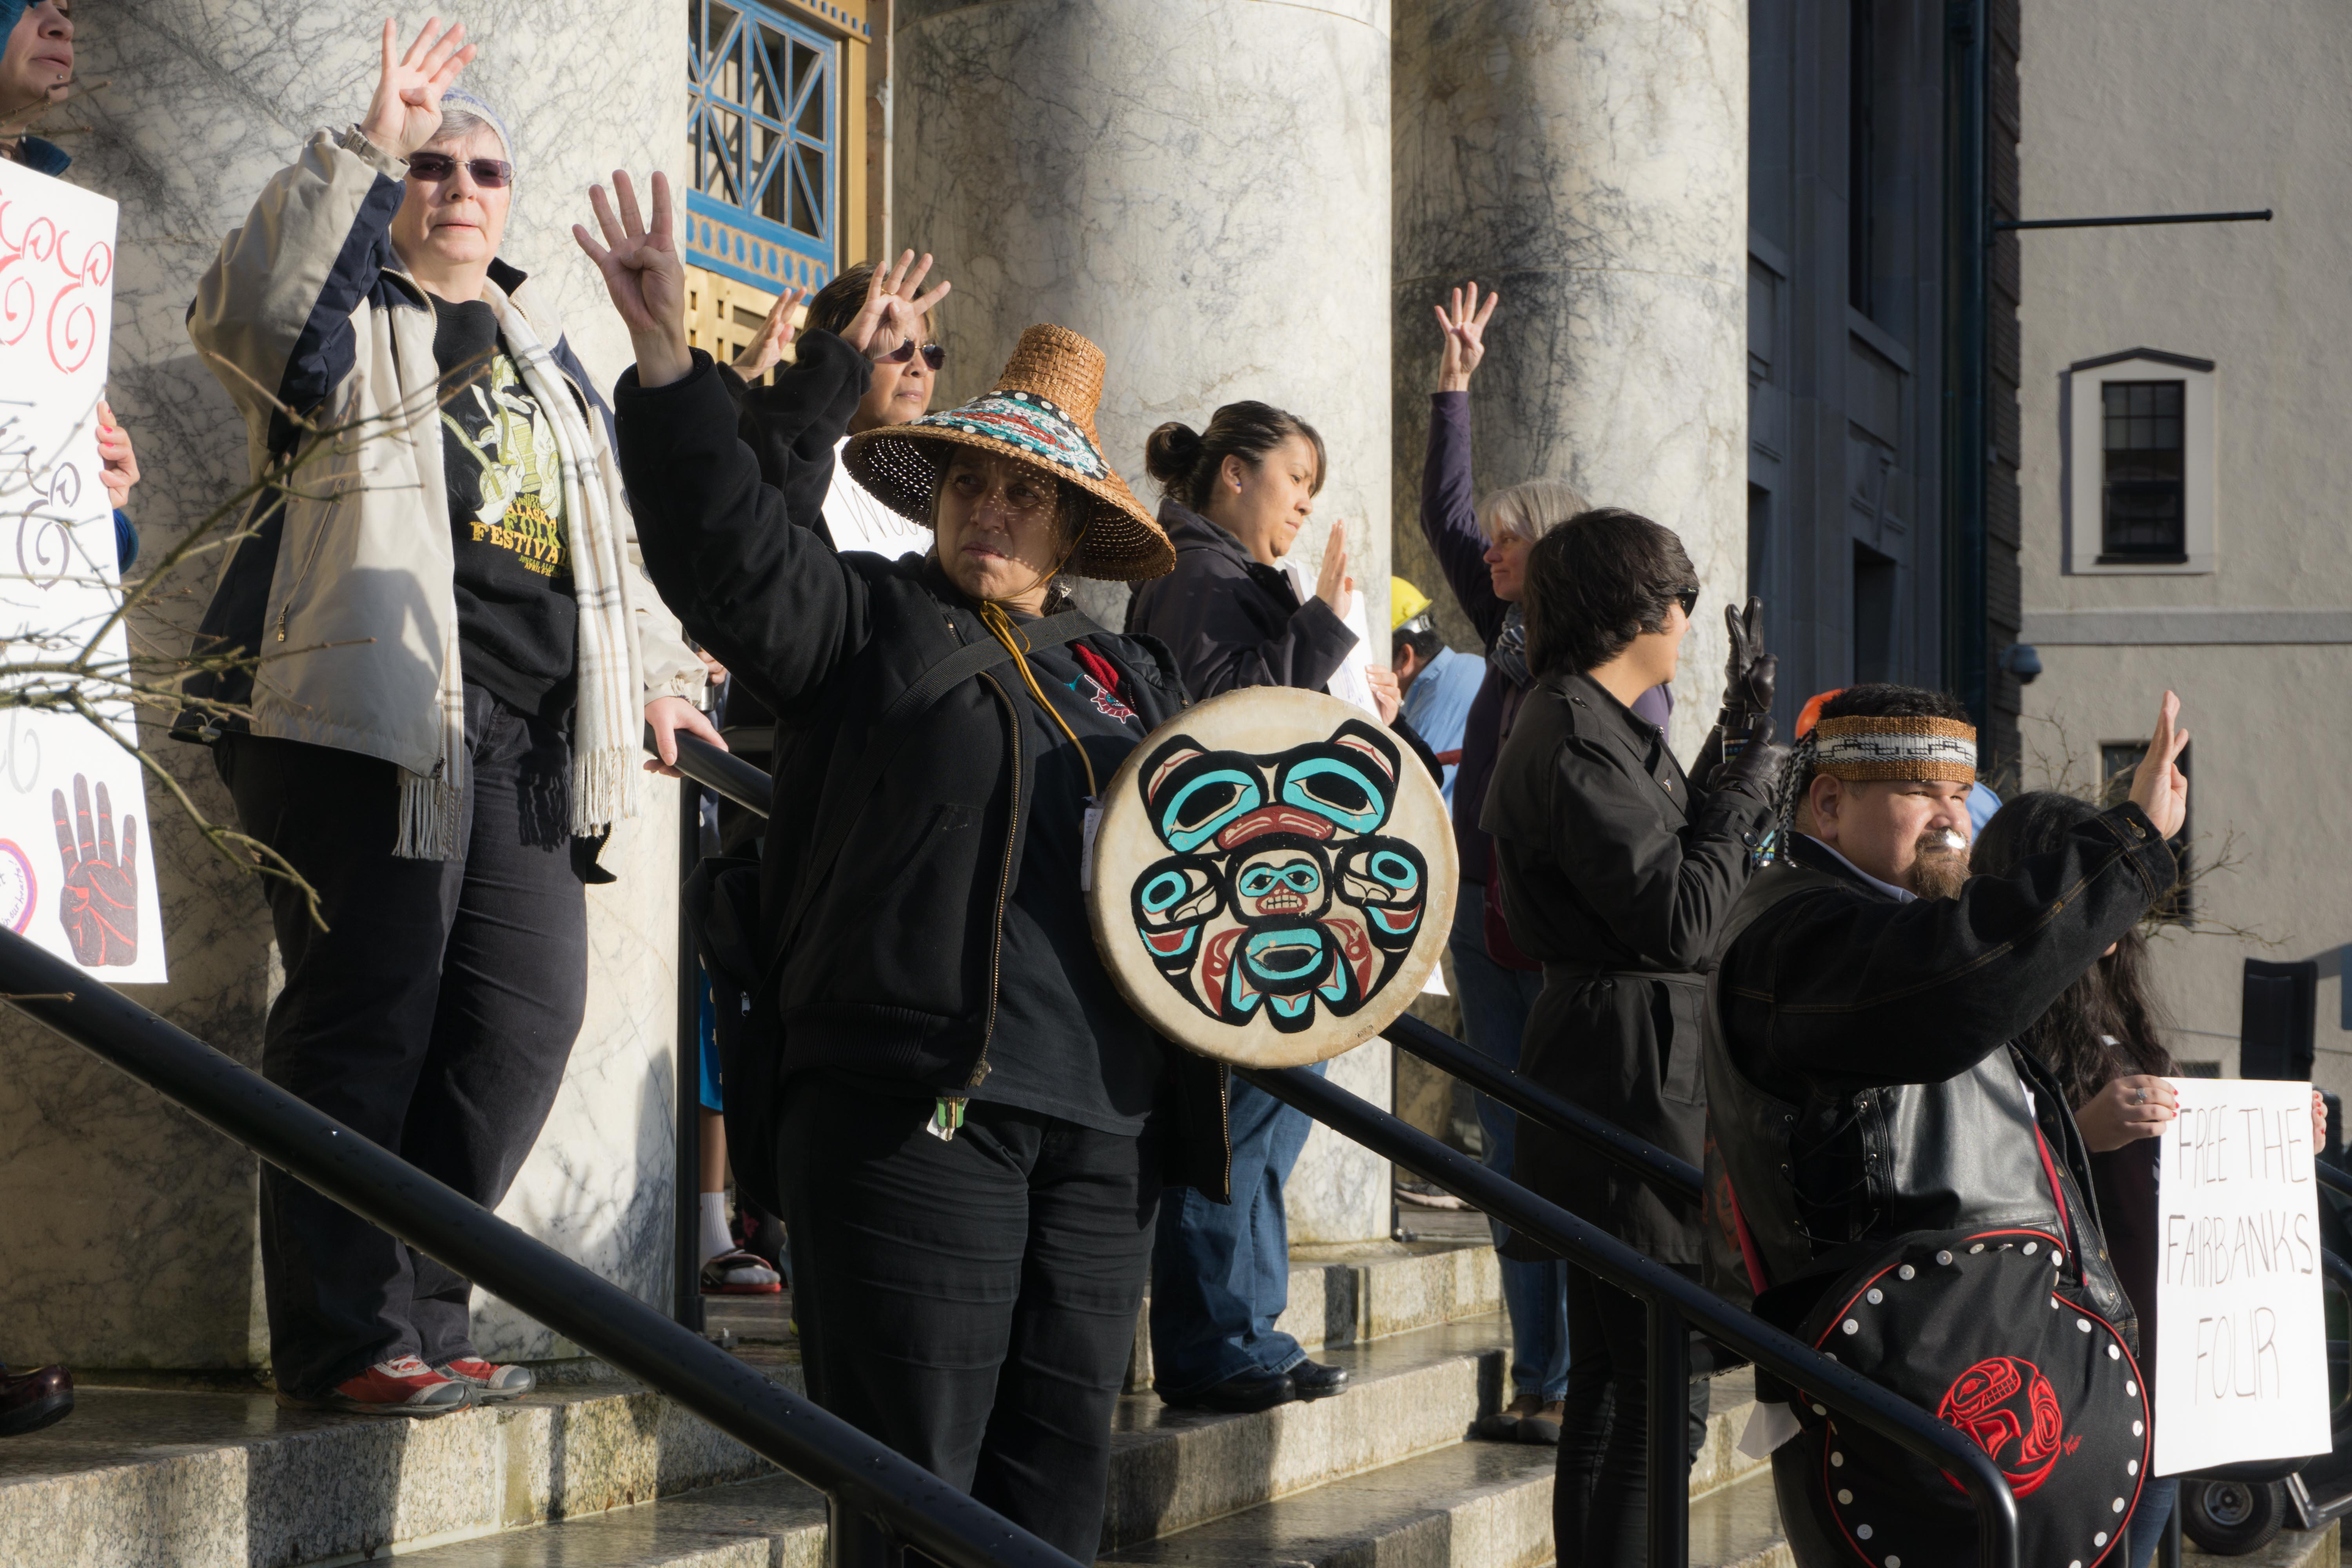 Fairbnaks Four protesters at the Capitol, Oct. 24, 2015. (Photo by Jeremy Hsieh/KTOO)